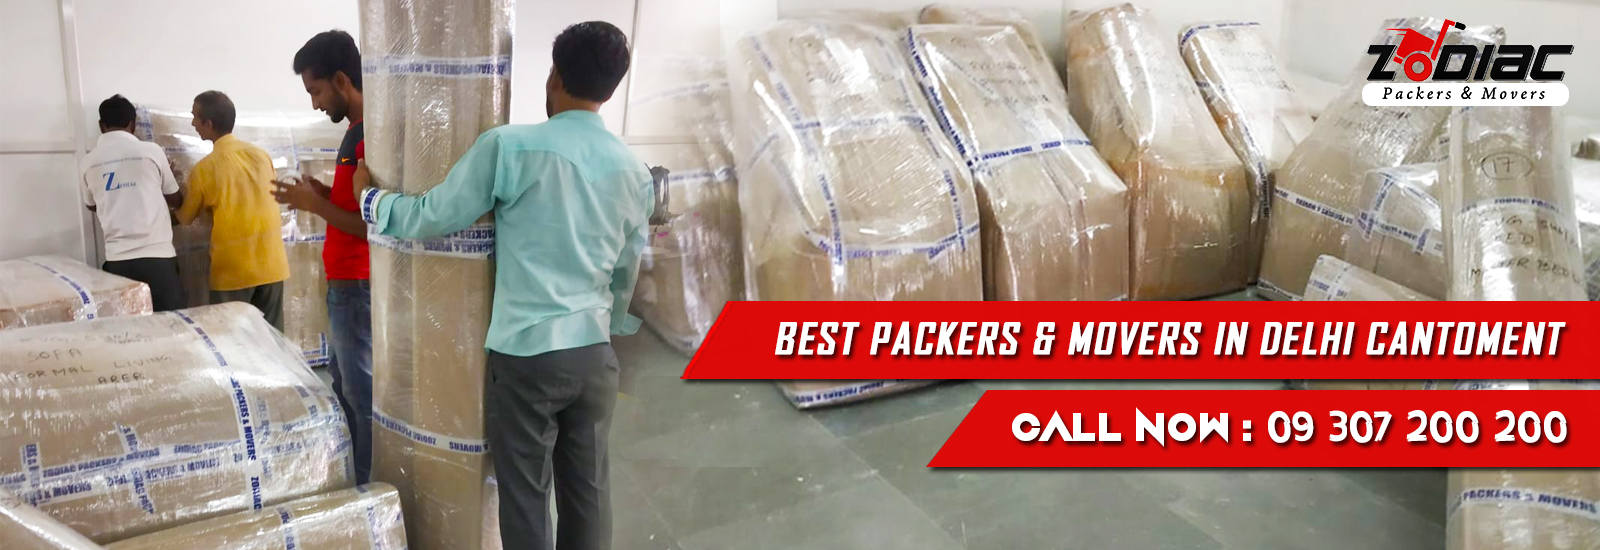 Packers and Movers in Delhi Cantoment